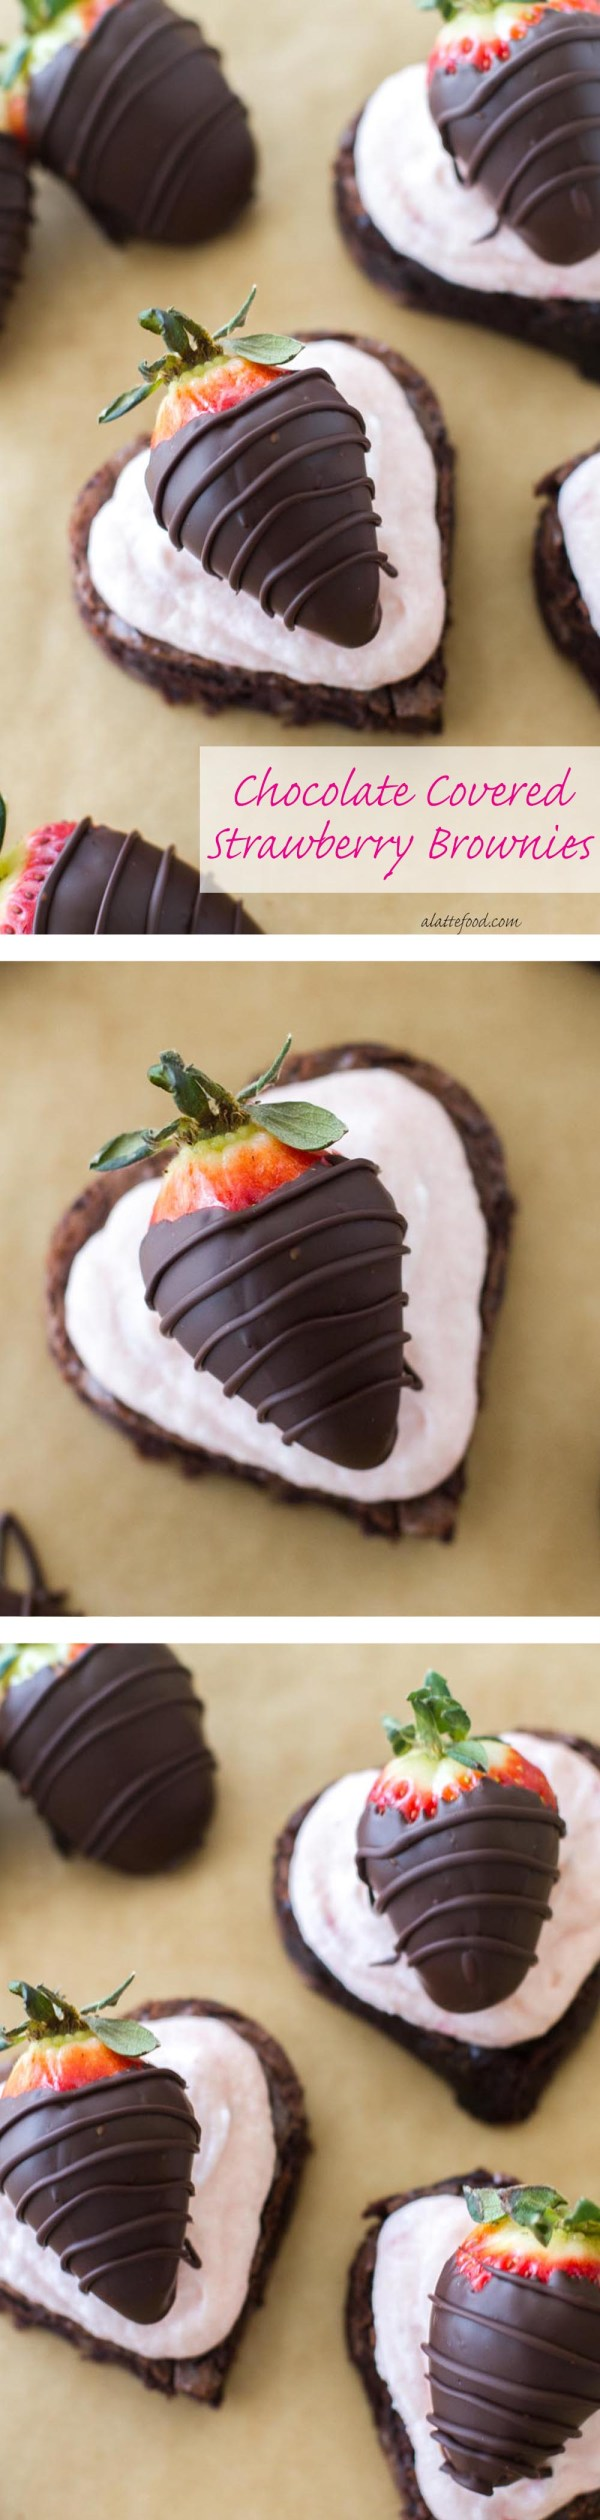 These fudgy brownies are topped with homemade strawberry buttercream and chocolate dipped strawberries. | www.alattefood.com